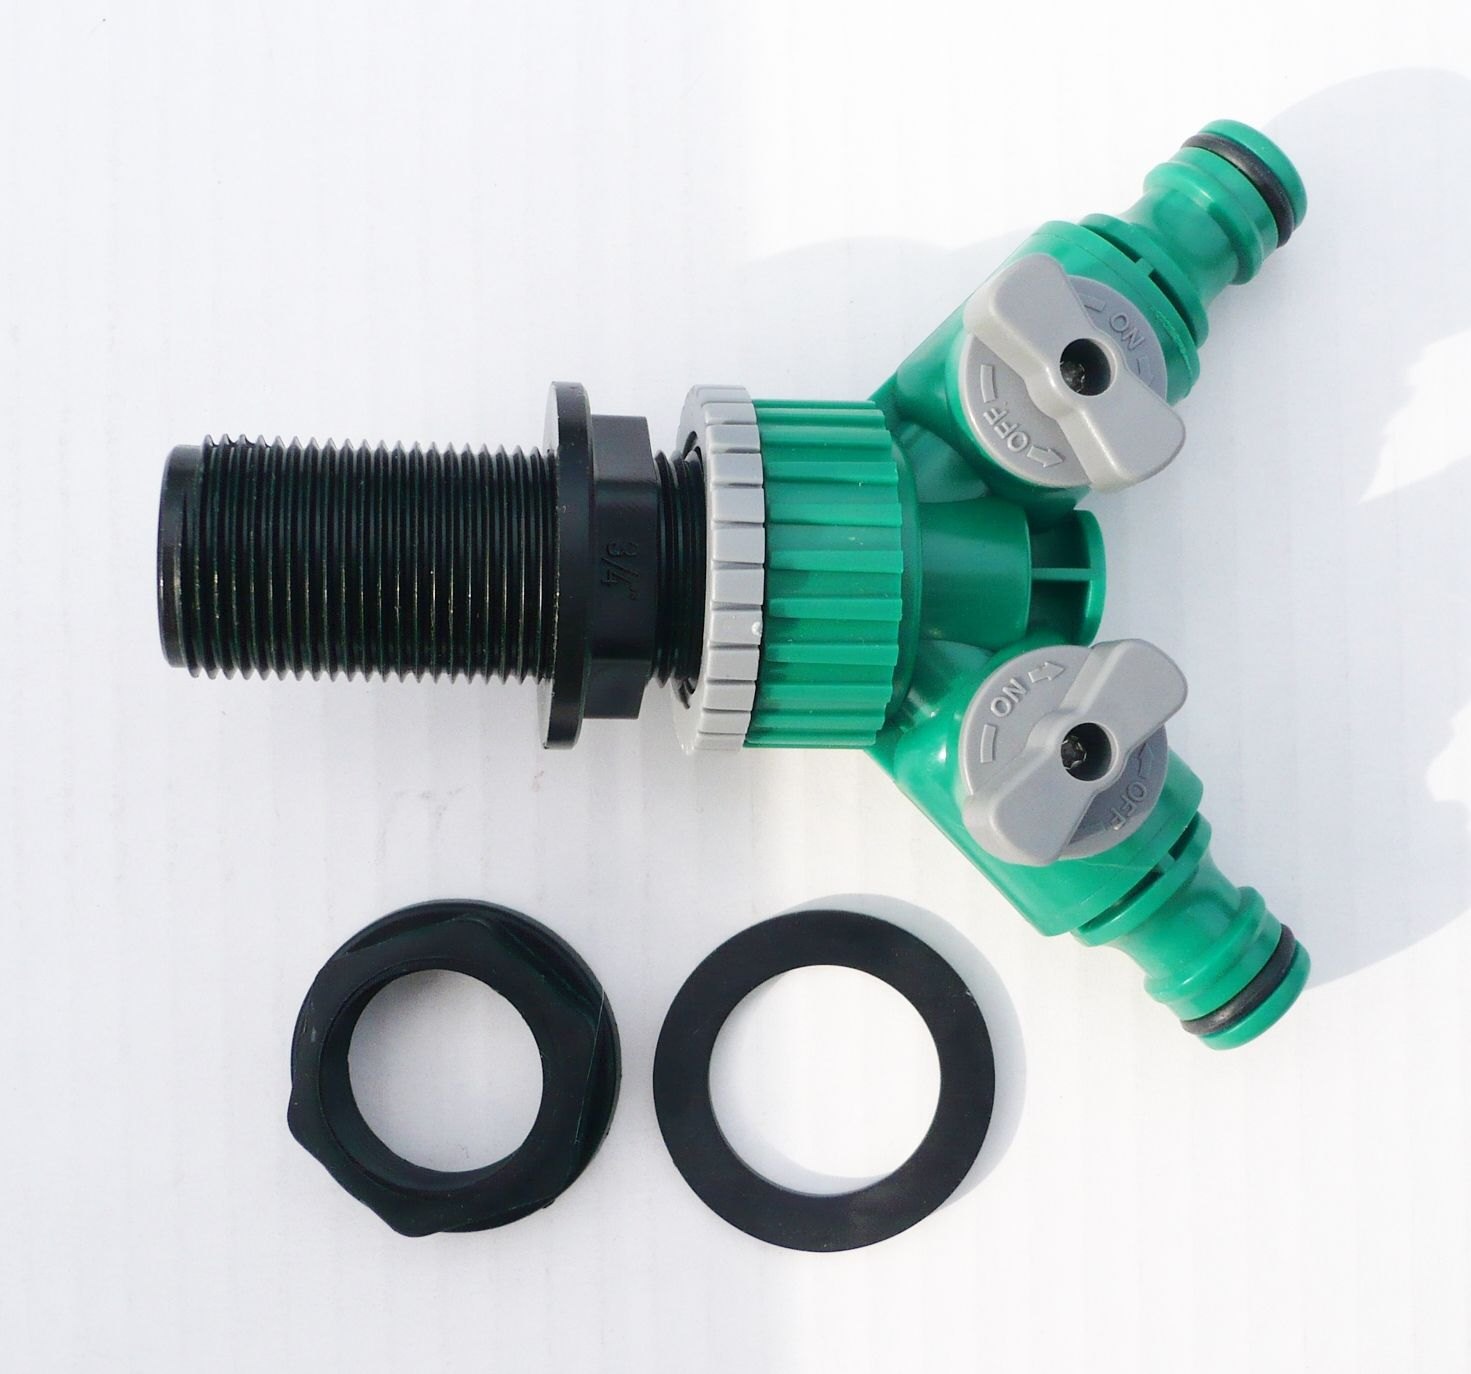 temperature connects to spray hose corrosion the strength connected easily hoses lot resistant connectors h universal with pipe water fitting be itm connector garden nozzle adaptor high quick car can